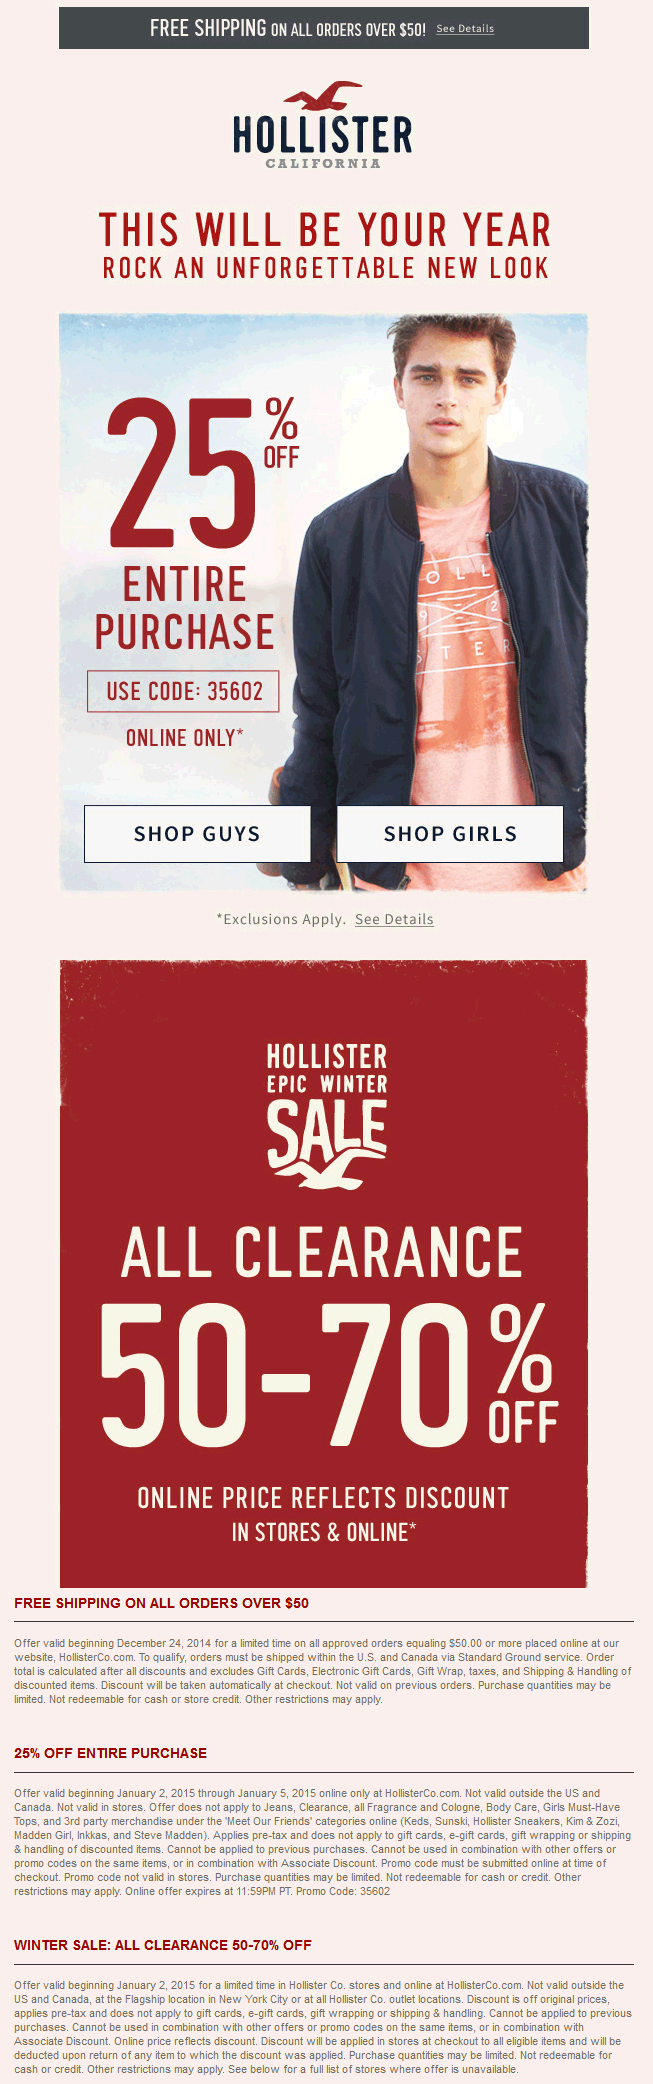 Hollister Coupon September 2017 25% off everything + 50-70% off clearance at Hollister, or online via promo code 35602